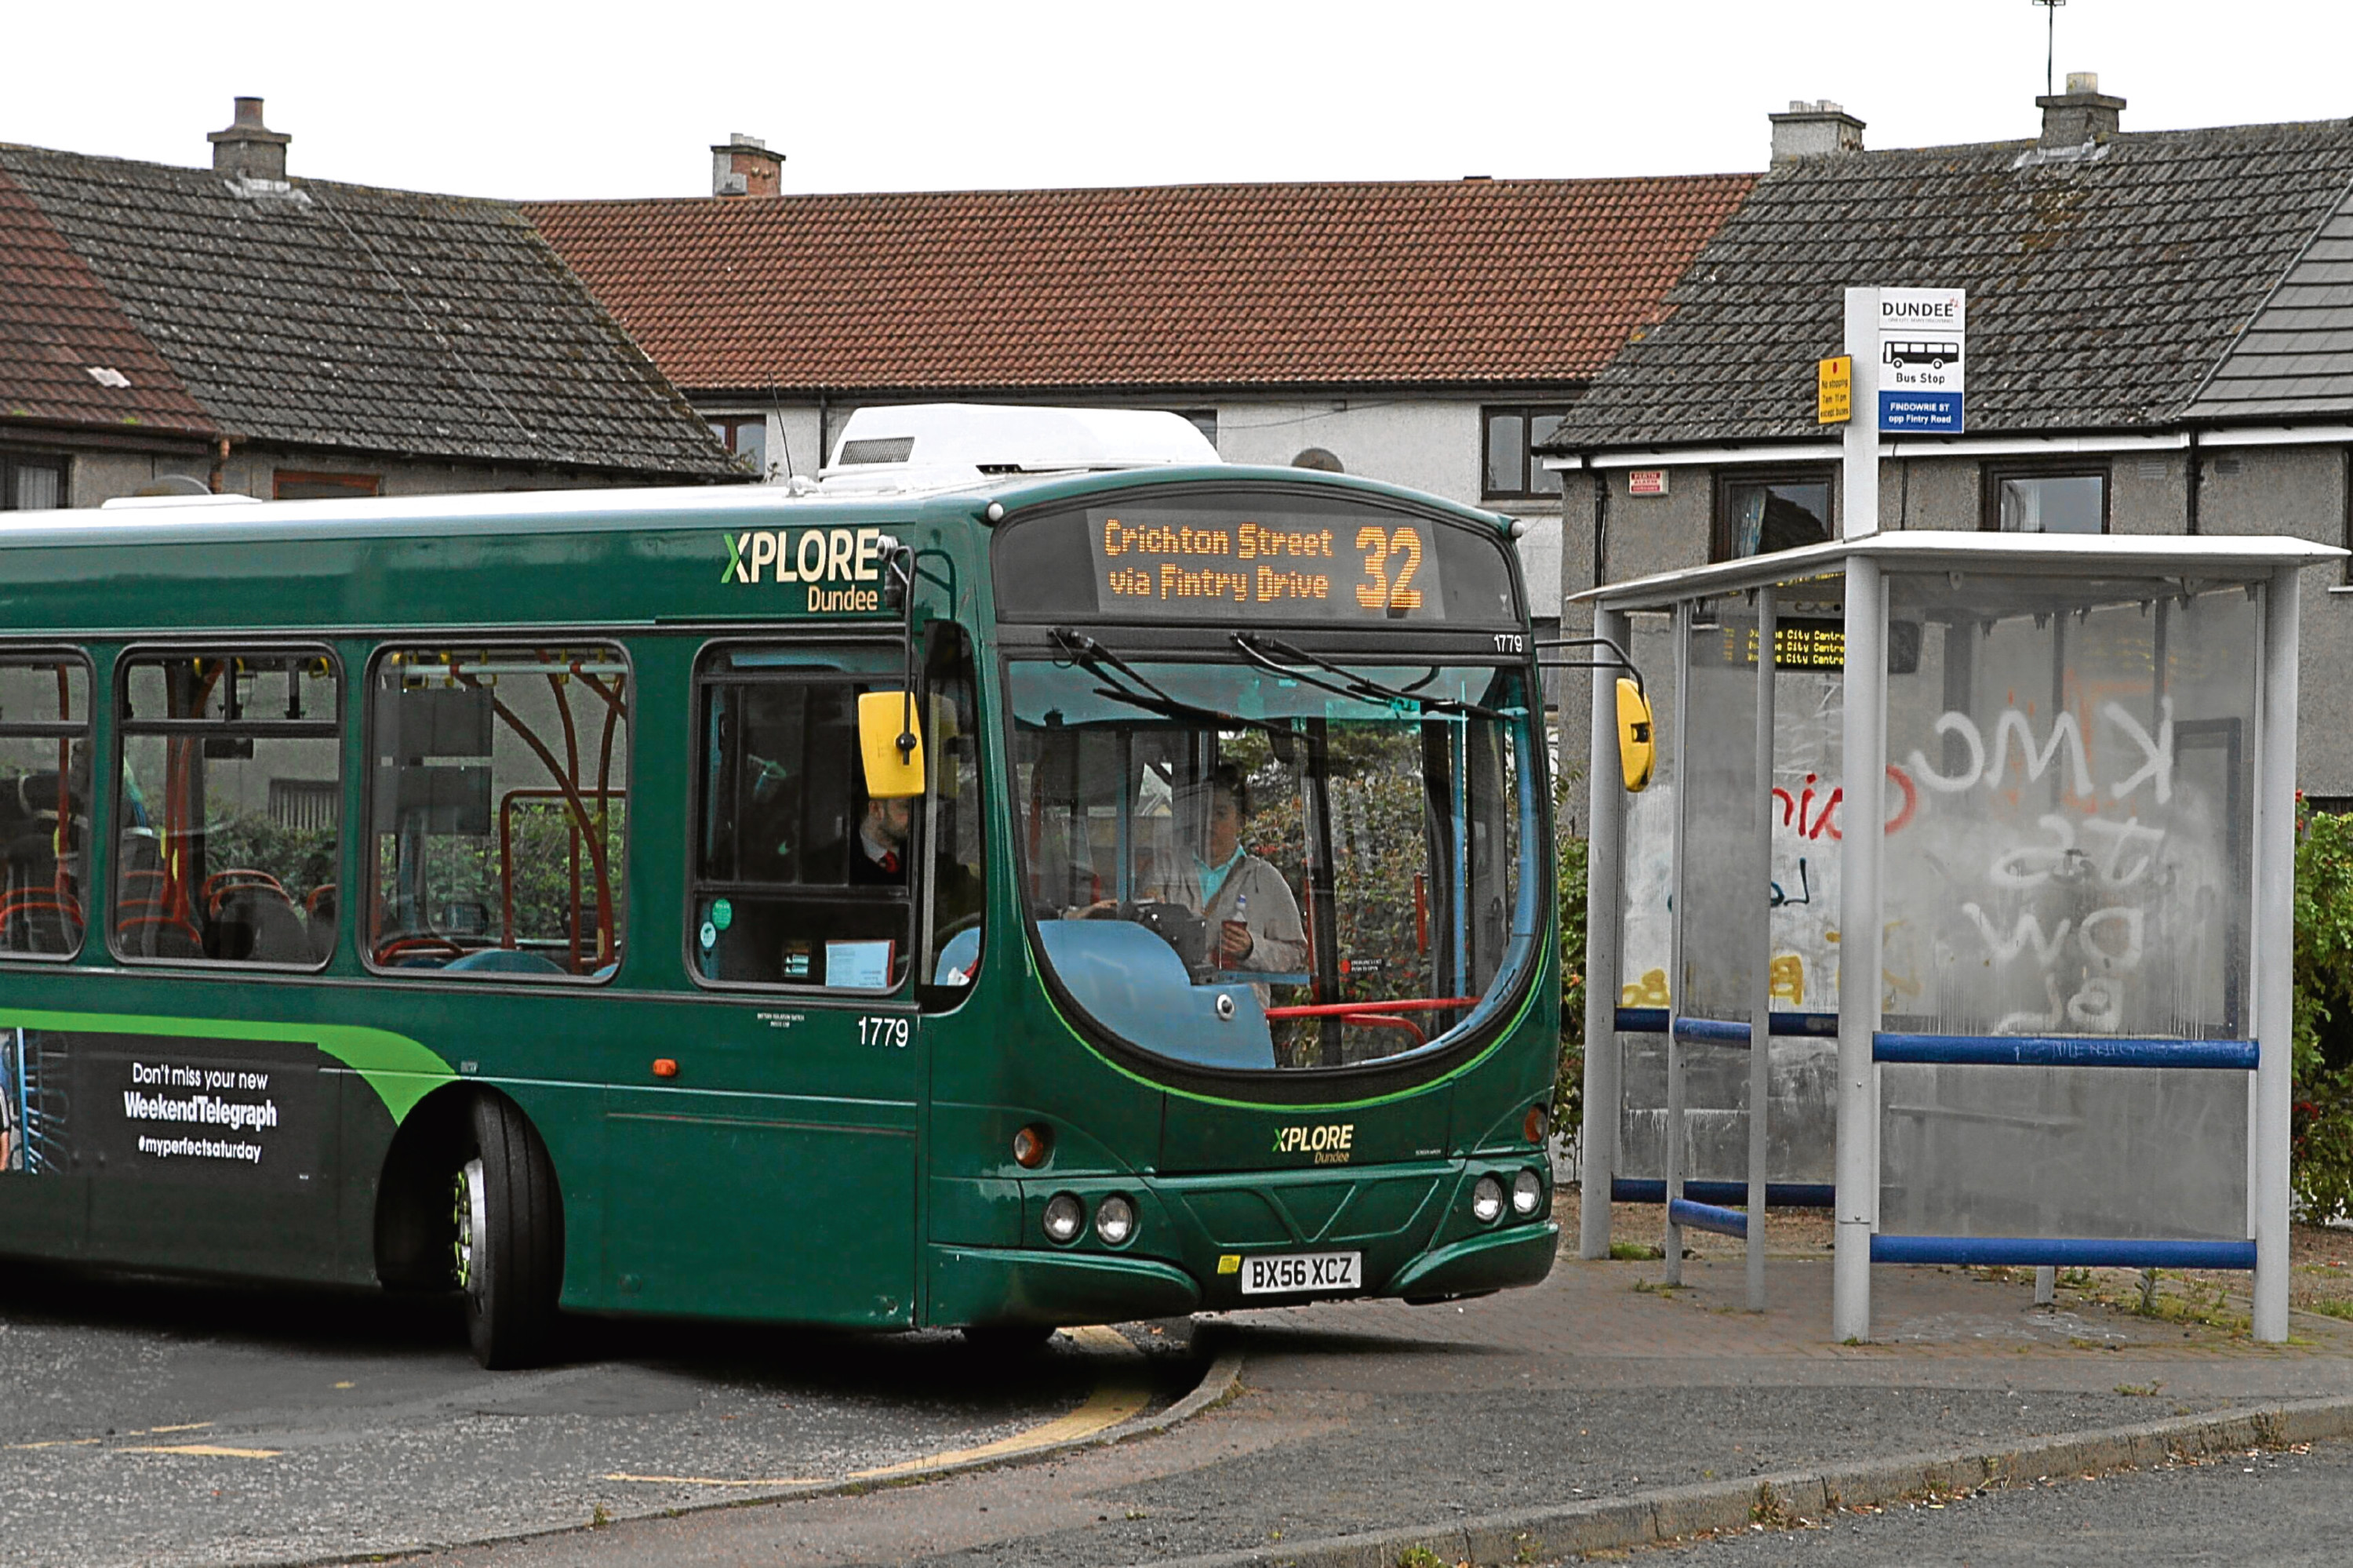 A number 32 bus in Fintry